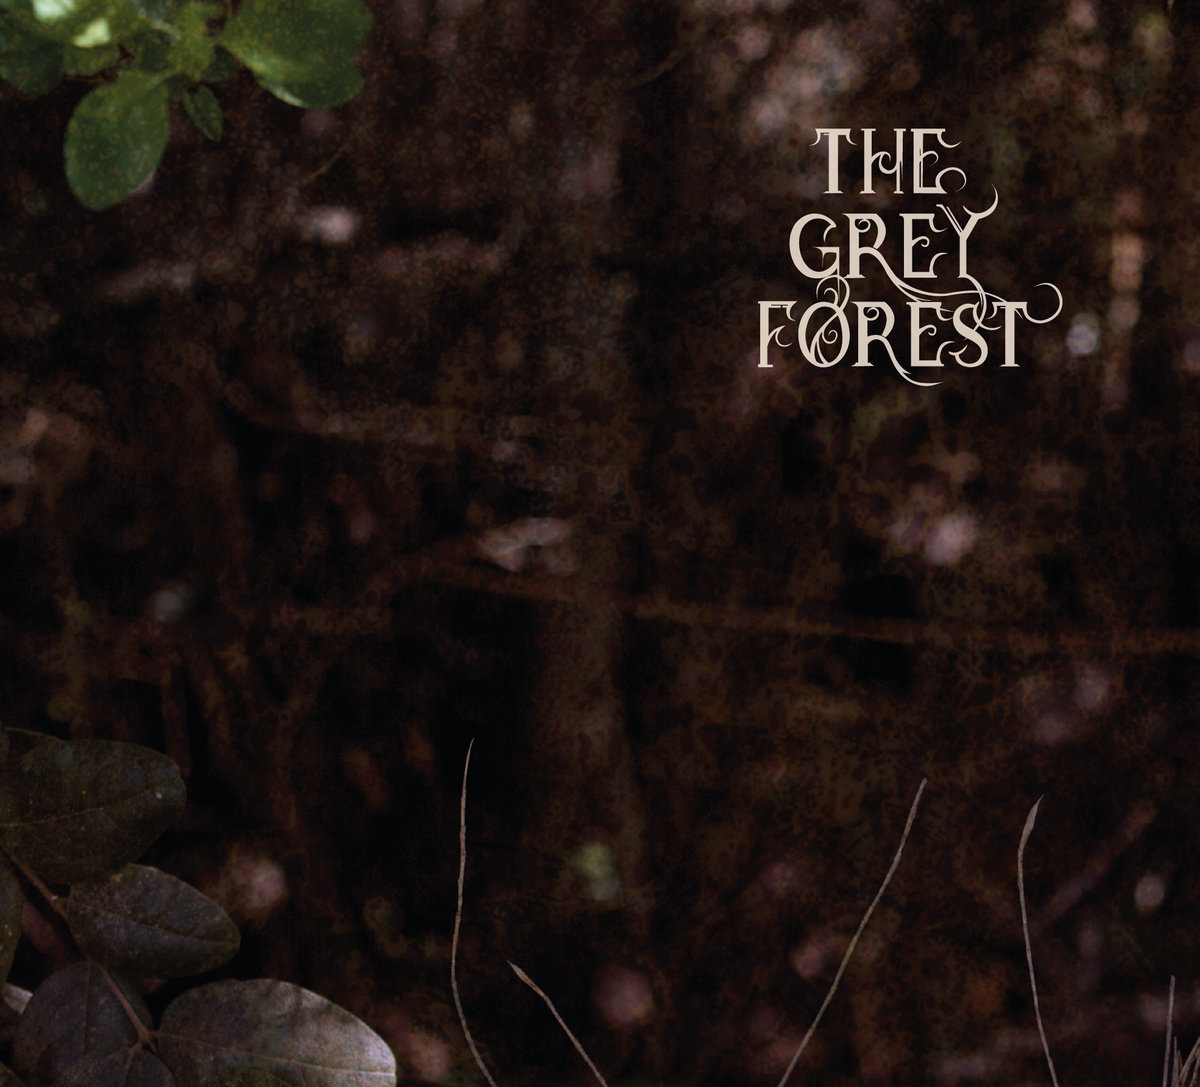 the grey forest album cover